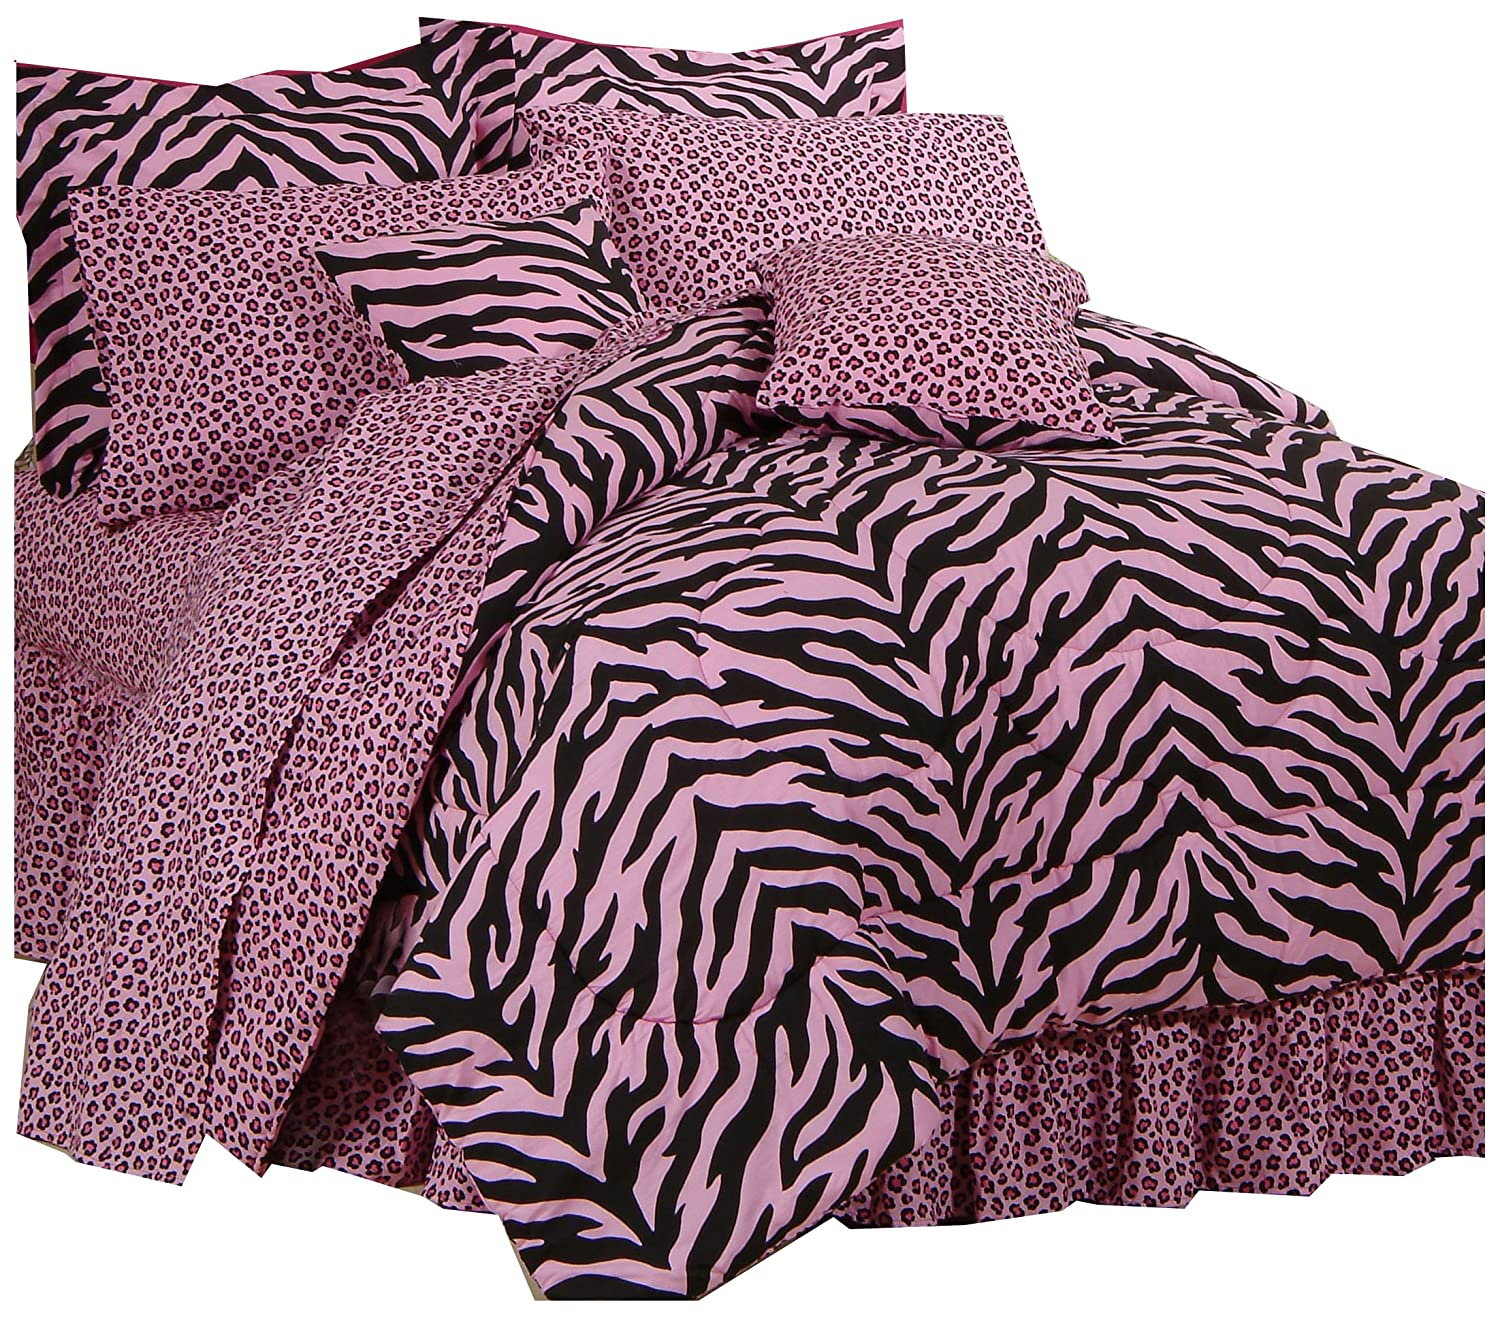 Karin Maki Zebra Complete Bedding Set, X-Large Twin, Pink